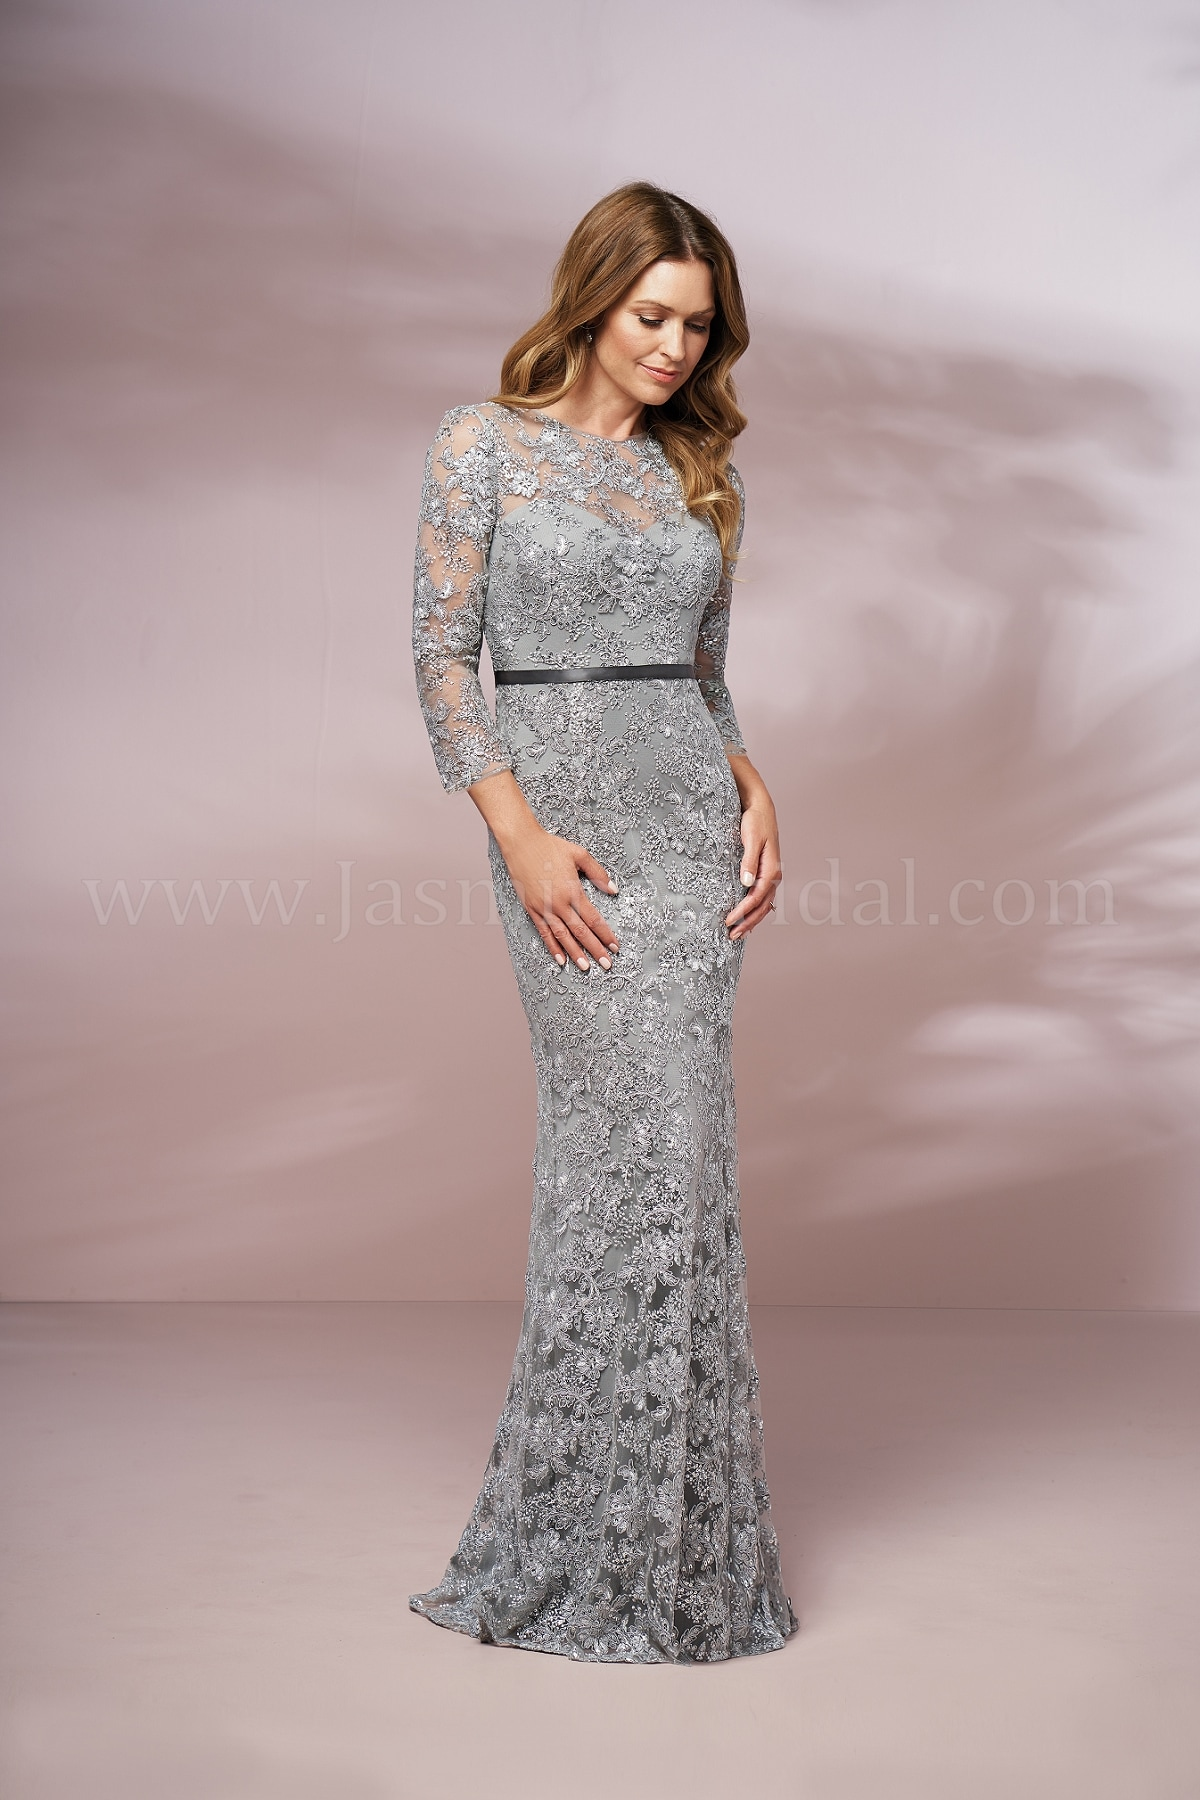 J205016 Long Illusion Jewel Neckline Lace Mob Dress With Sleeves